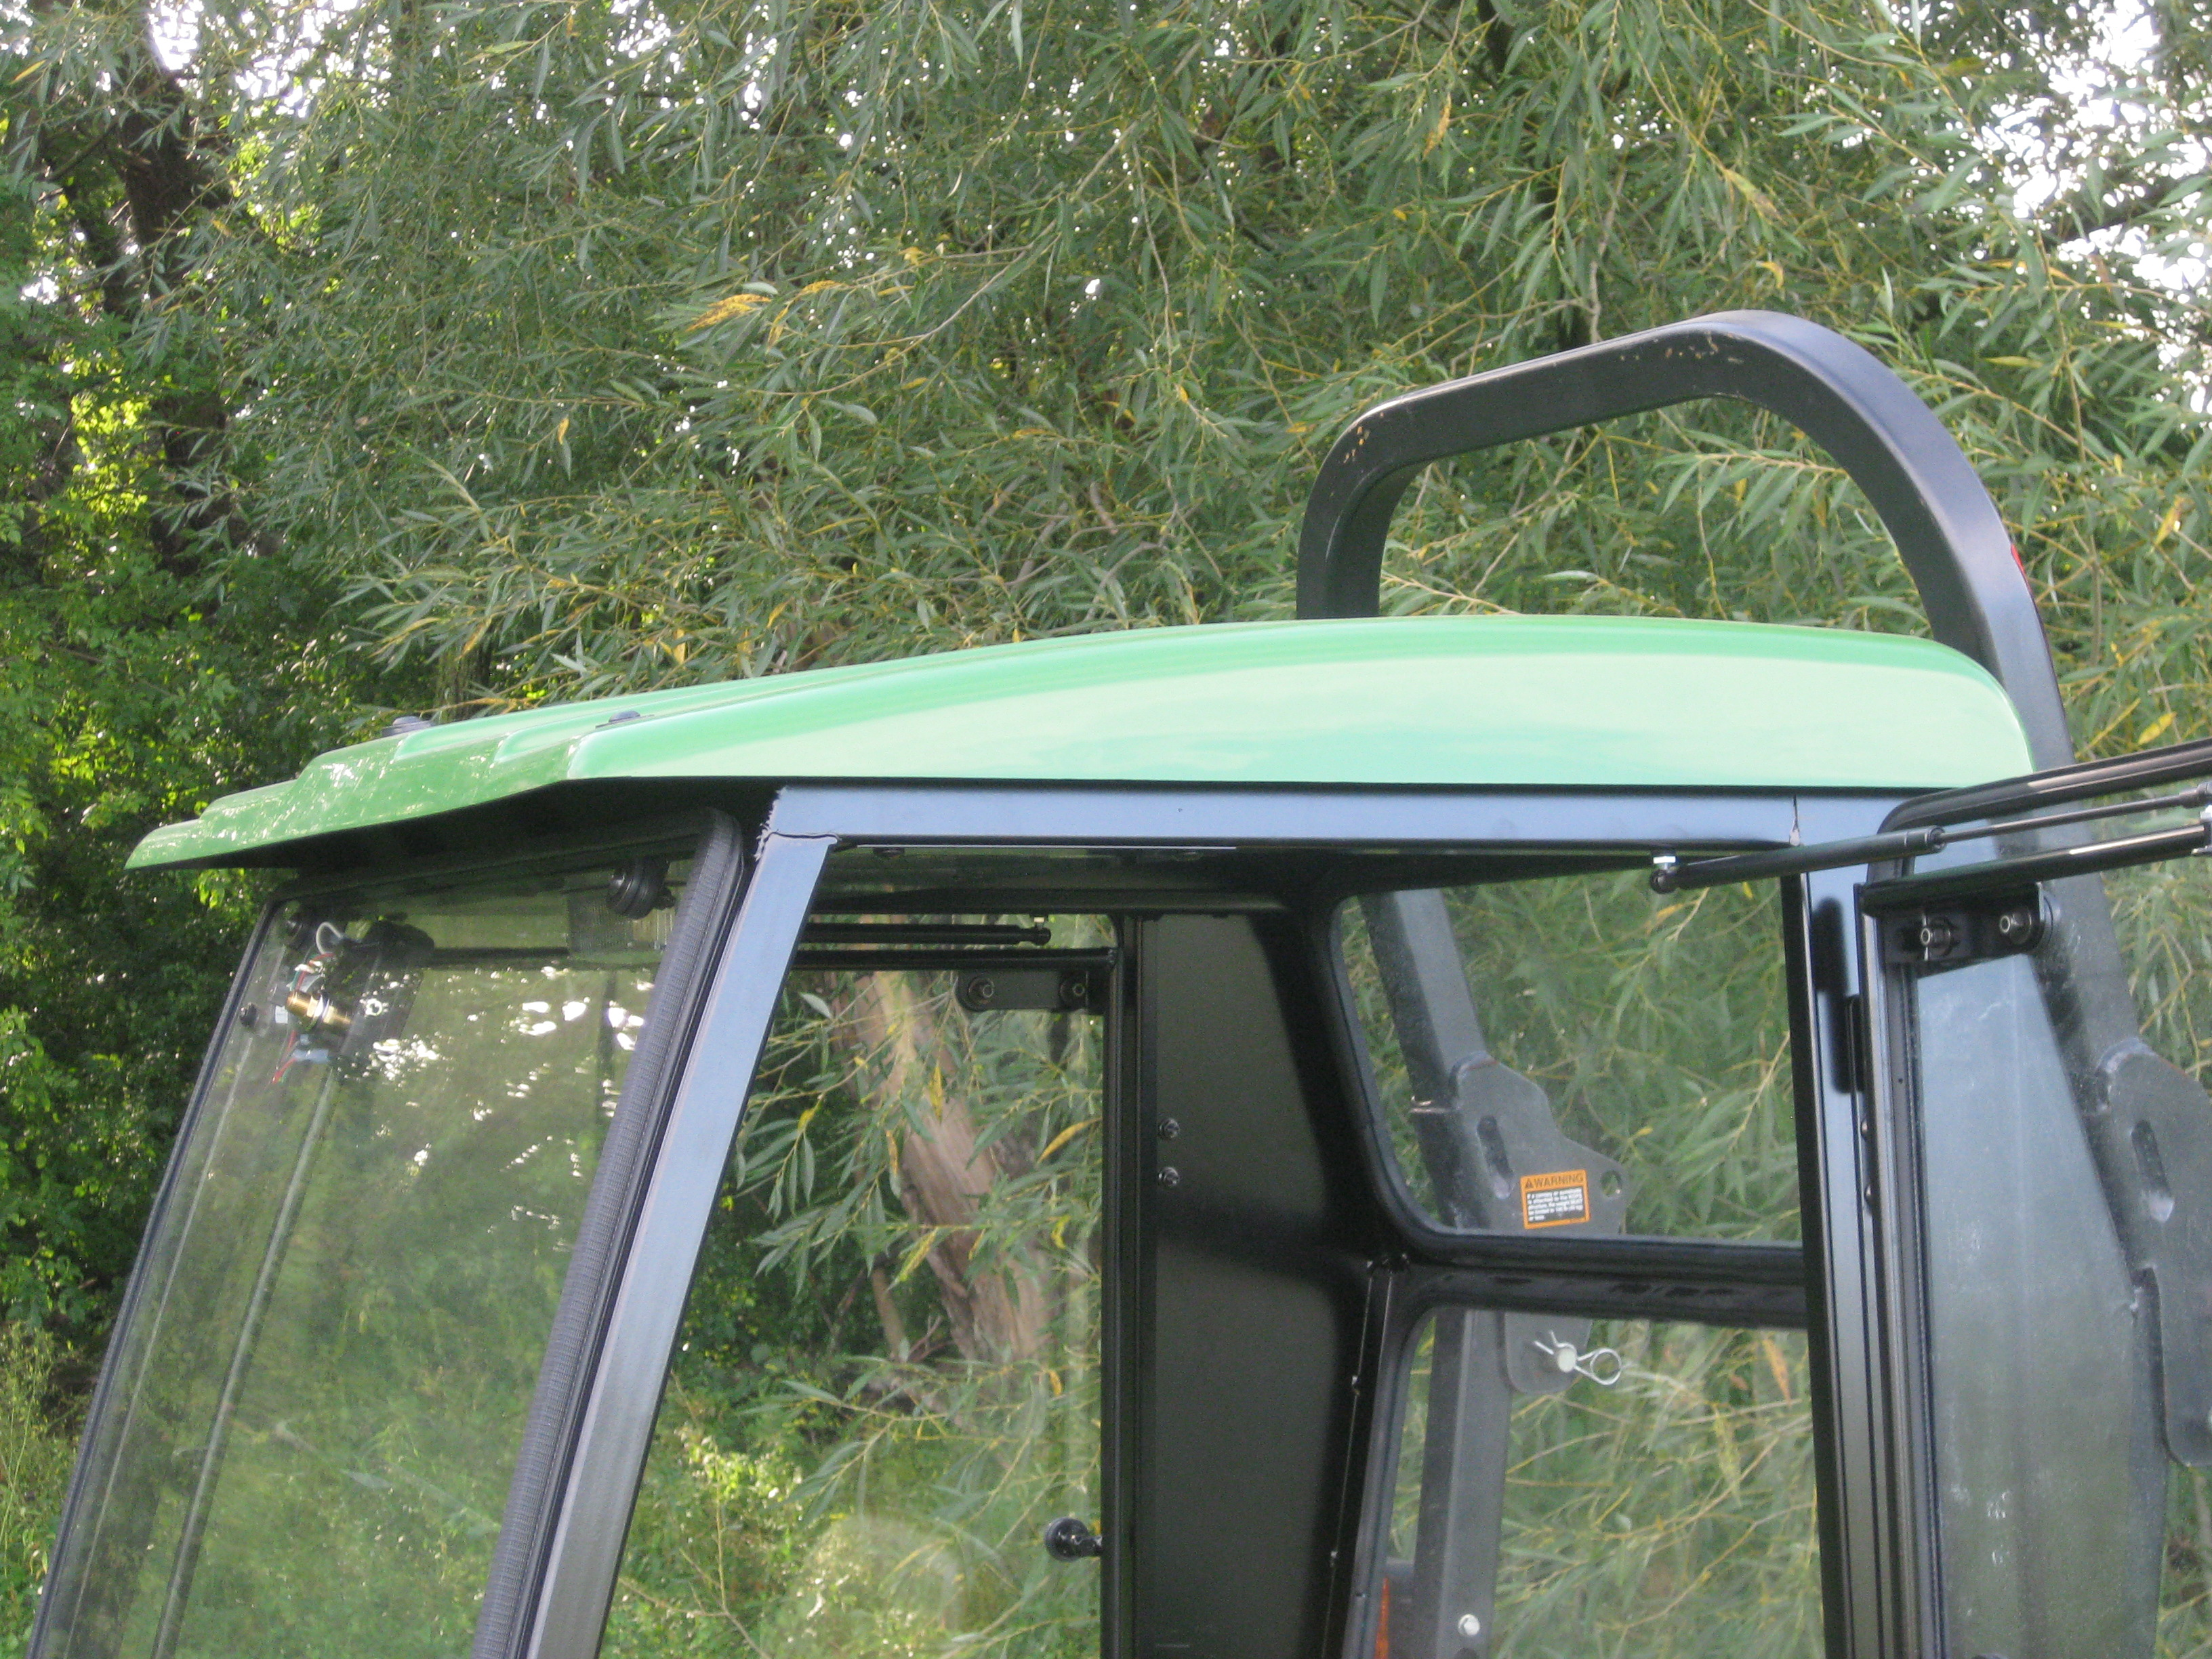 cozy cab fits john deere 2032r 2520 and 2720 cozy cab fits john deere 2032r 2520 and